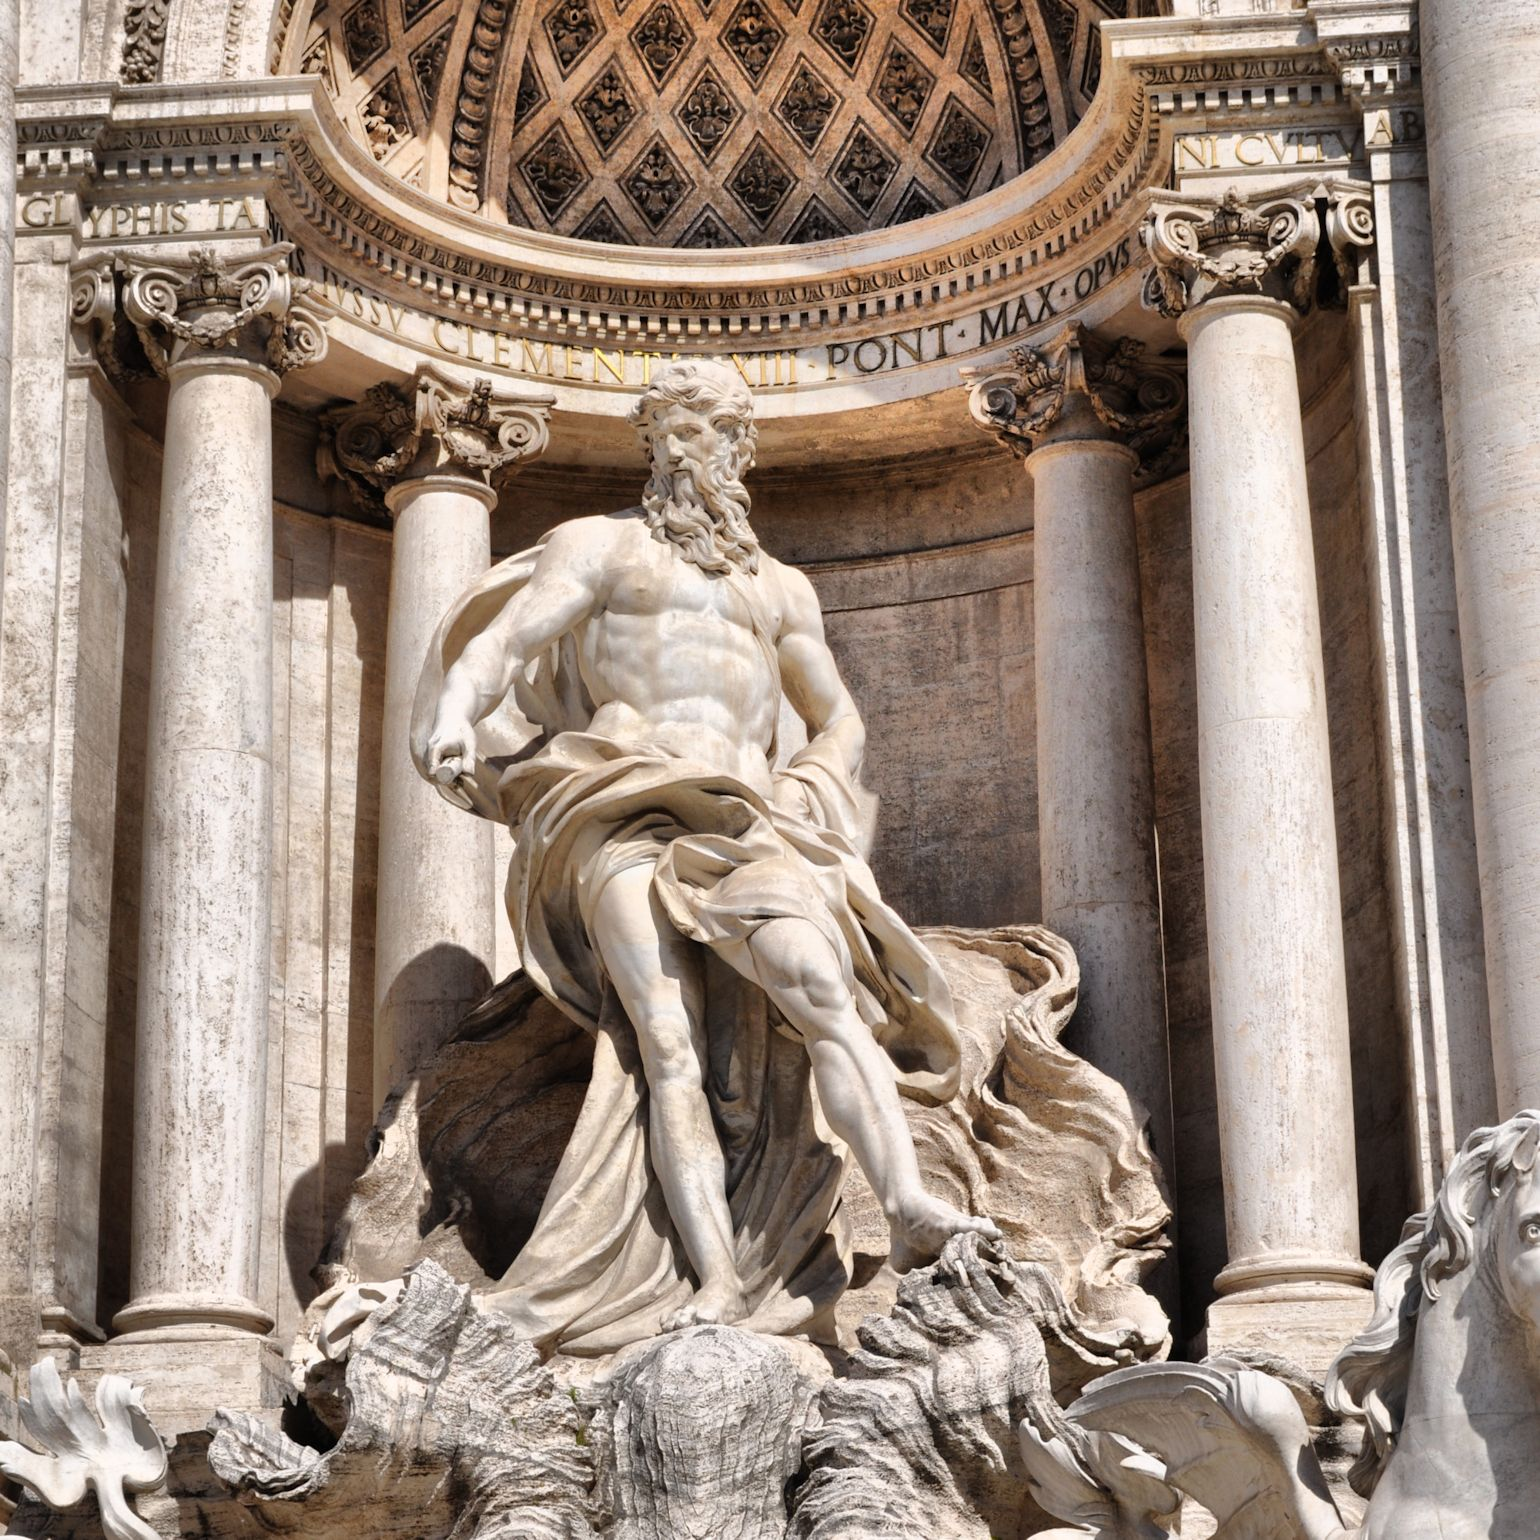 Neptune, God of the Sea, Trevi Fountain, Rome